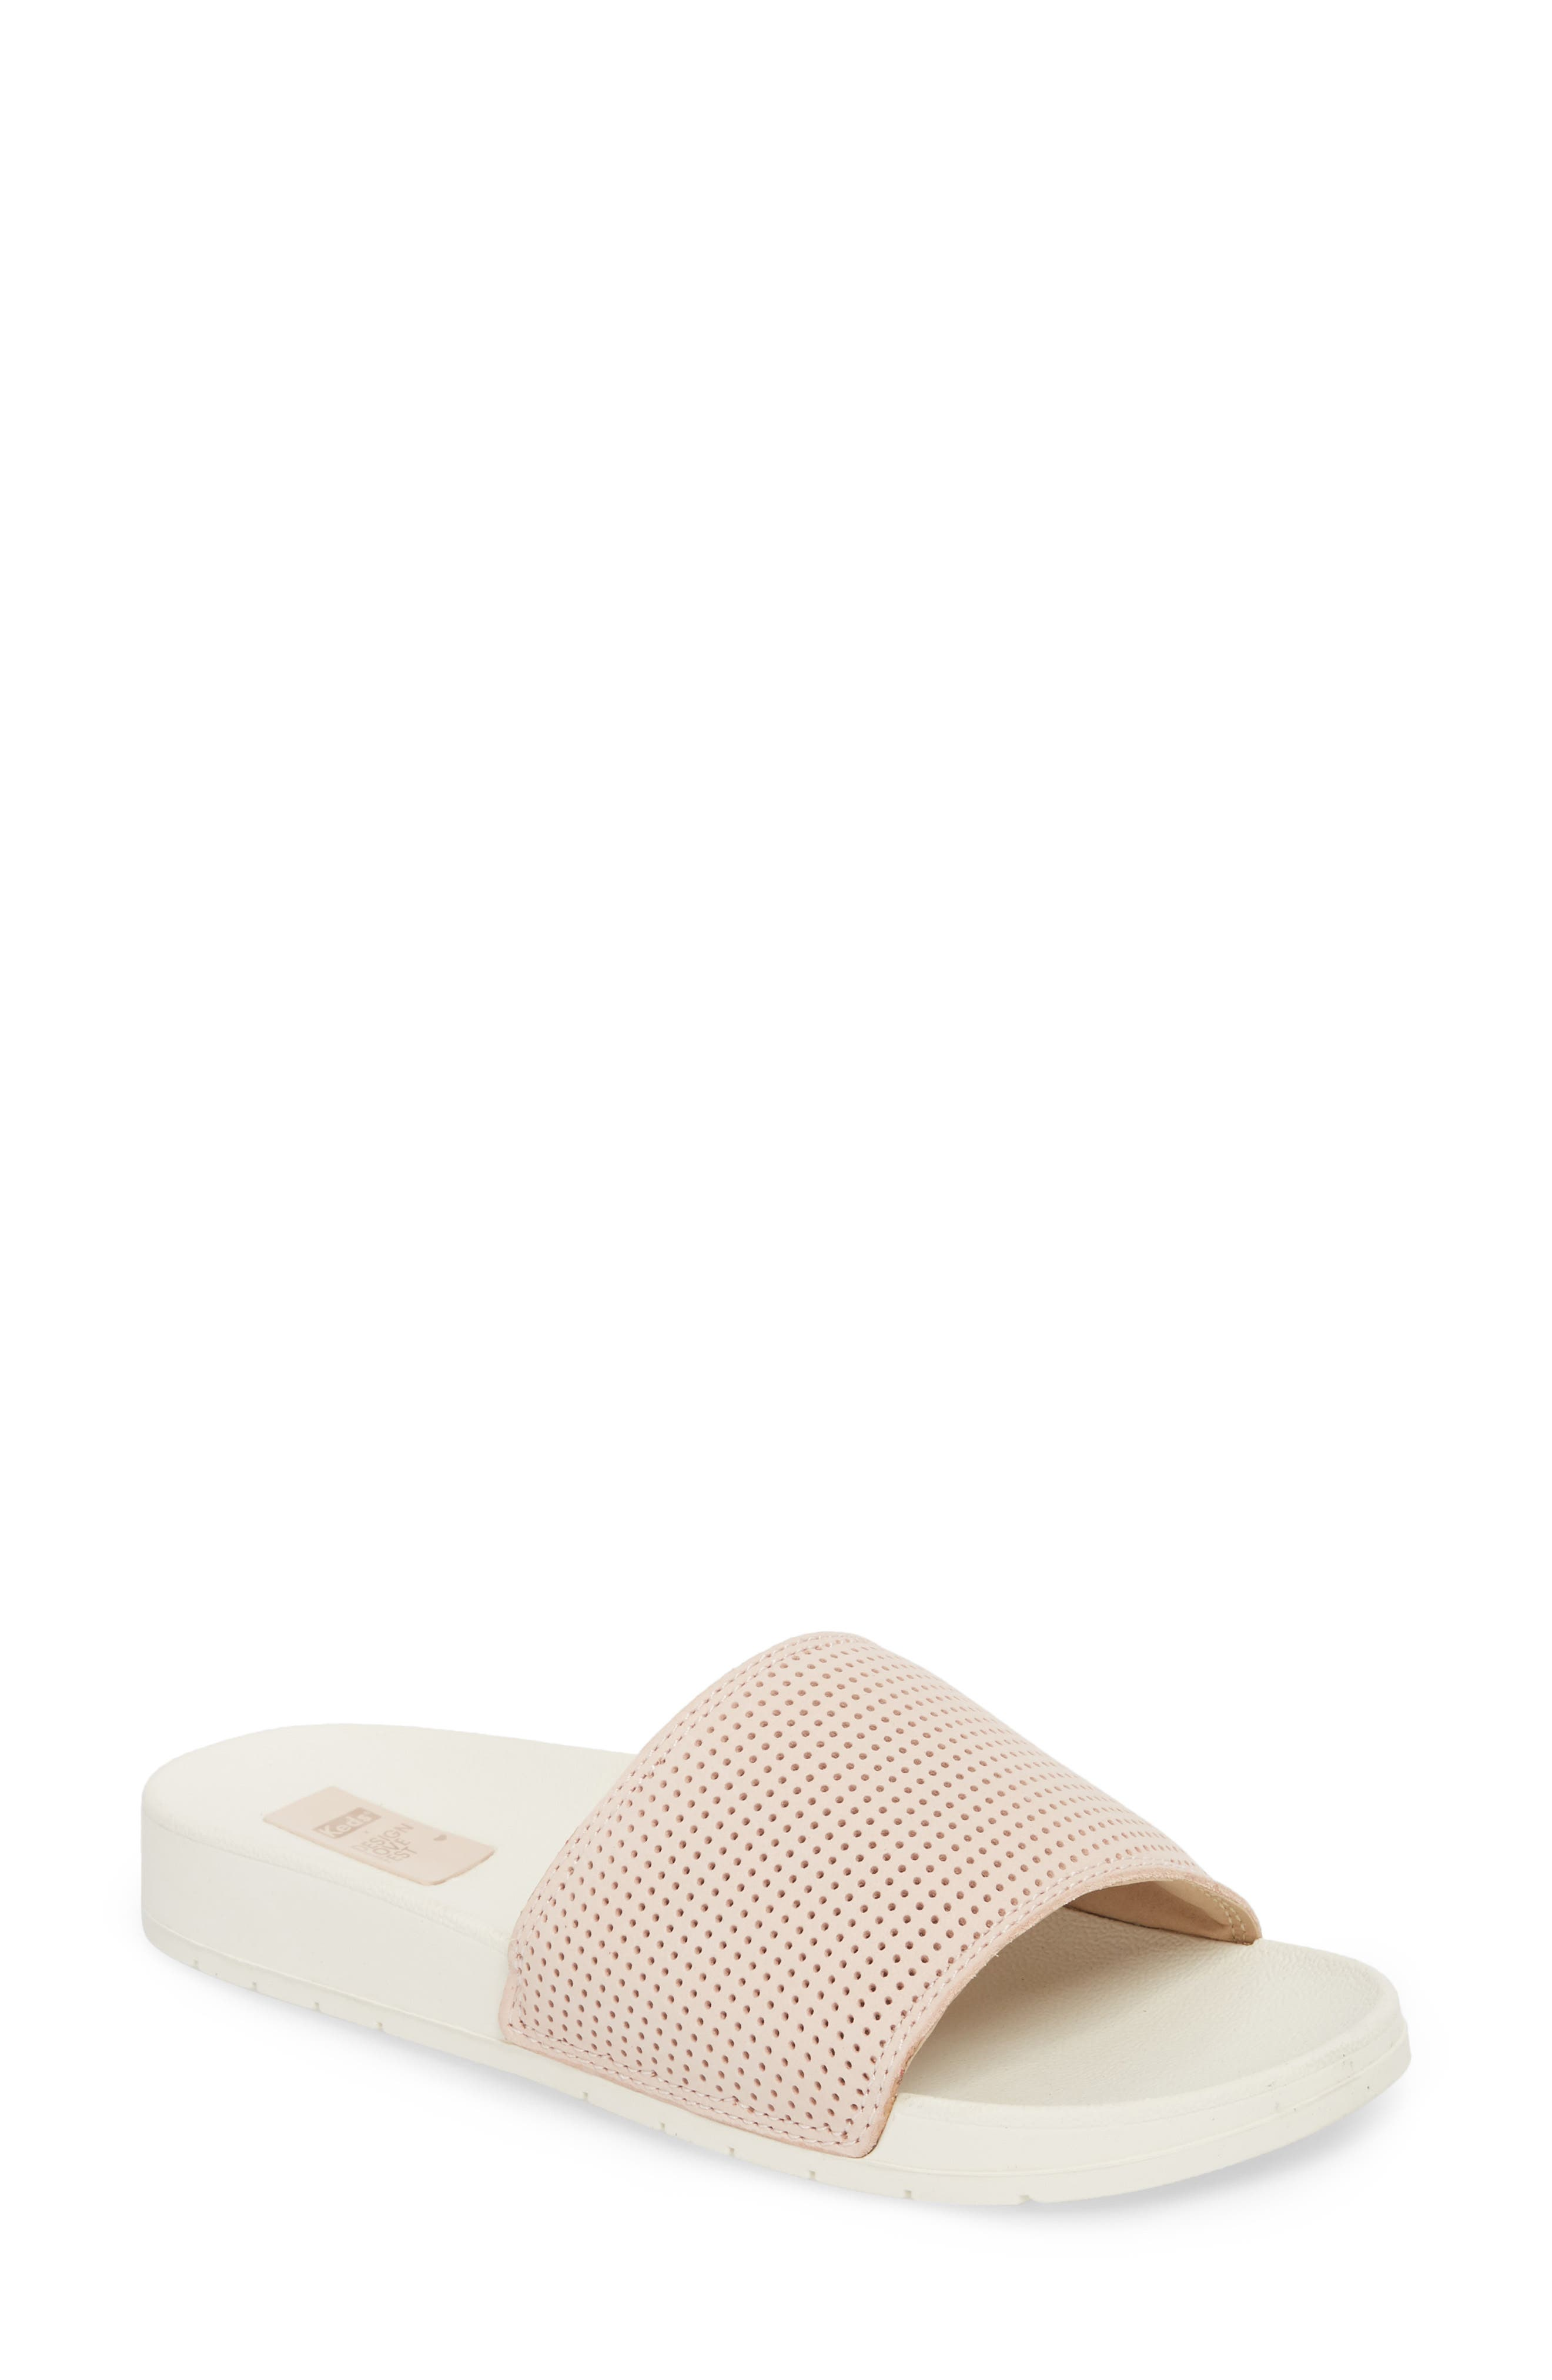 Keds Keds X Design Love Fest Bliss Sandal